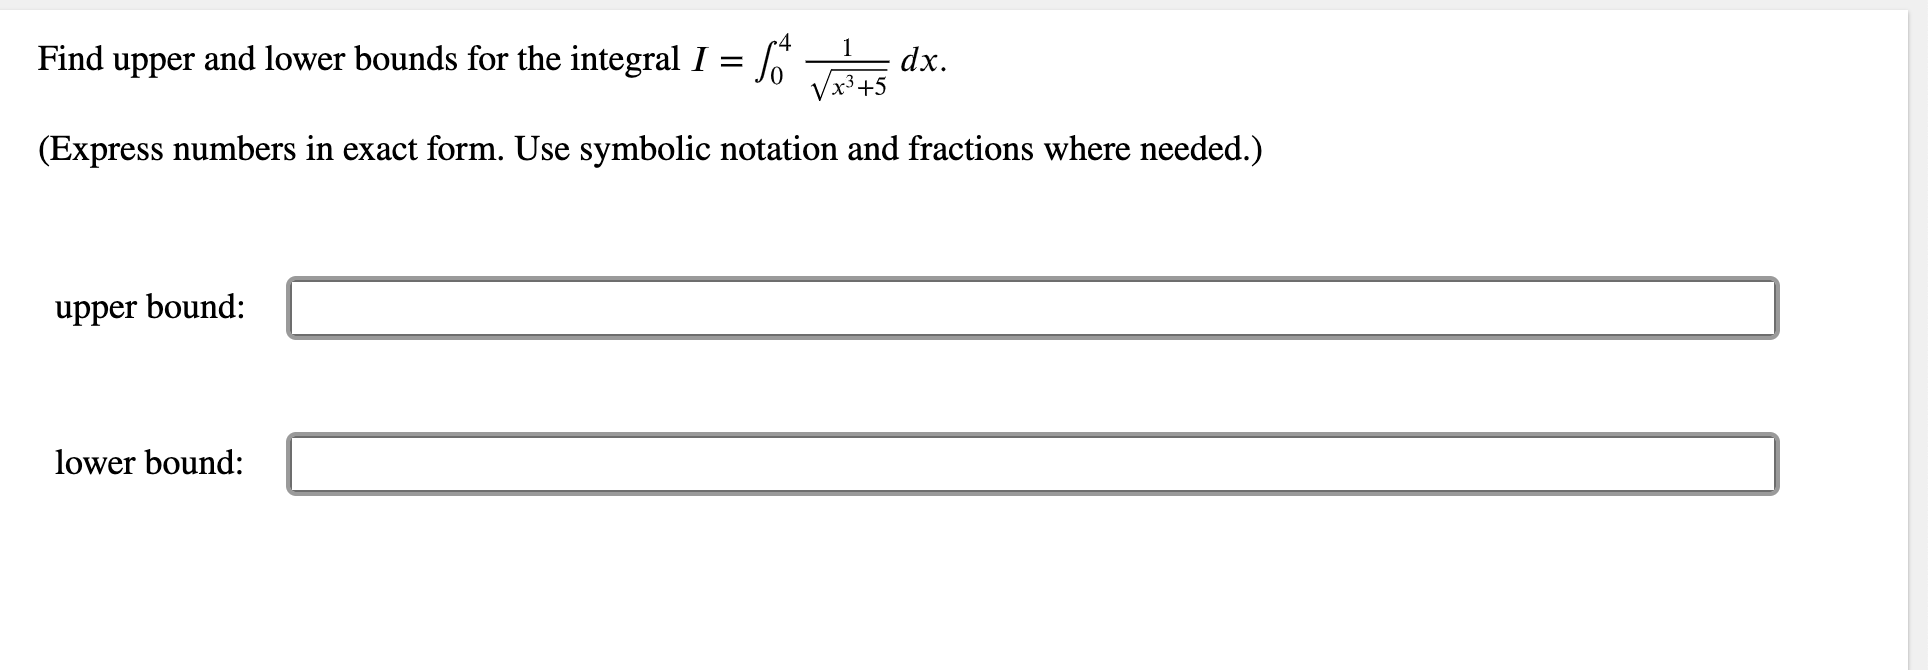 1 Find upper and lower bounds for the integral I = dx. x3+5 (Express numbers in exact form. Use symbolic notation and fractions where needed.) upper bound: lower bound: